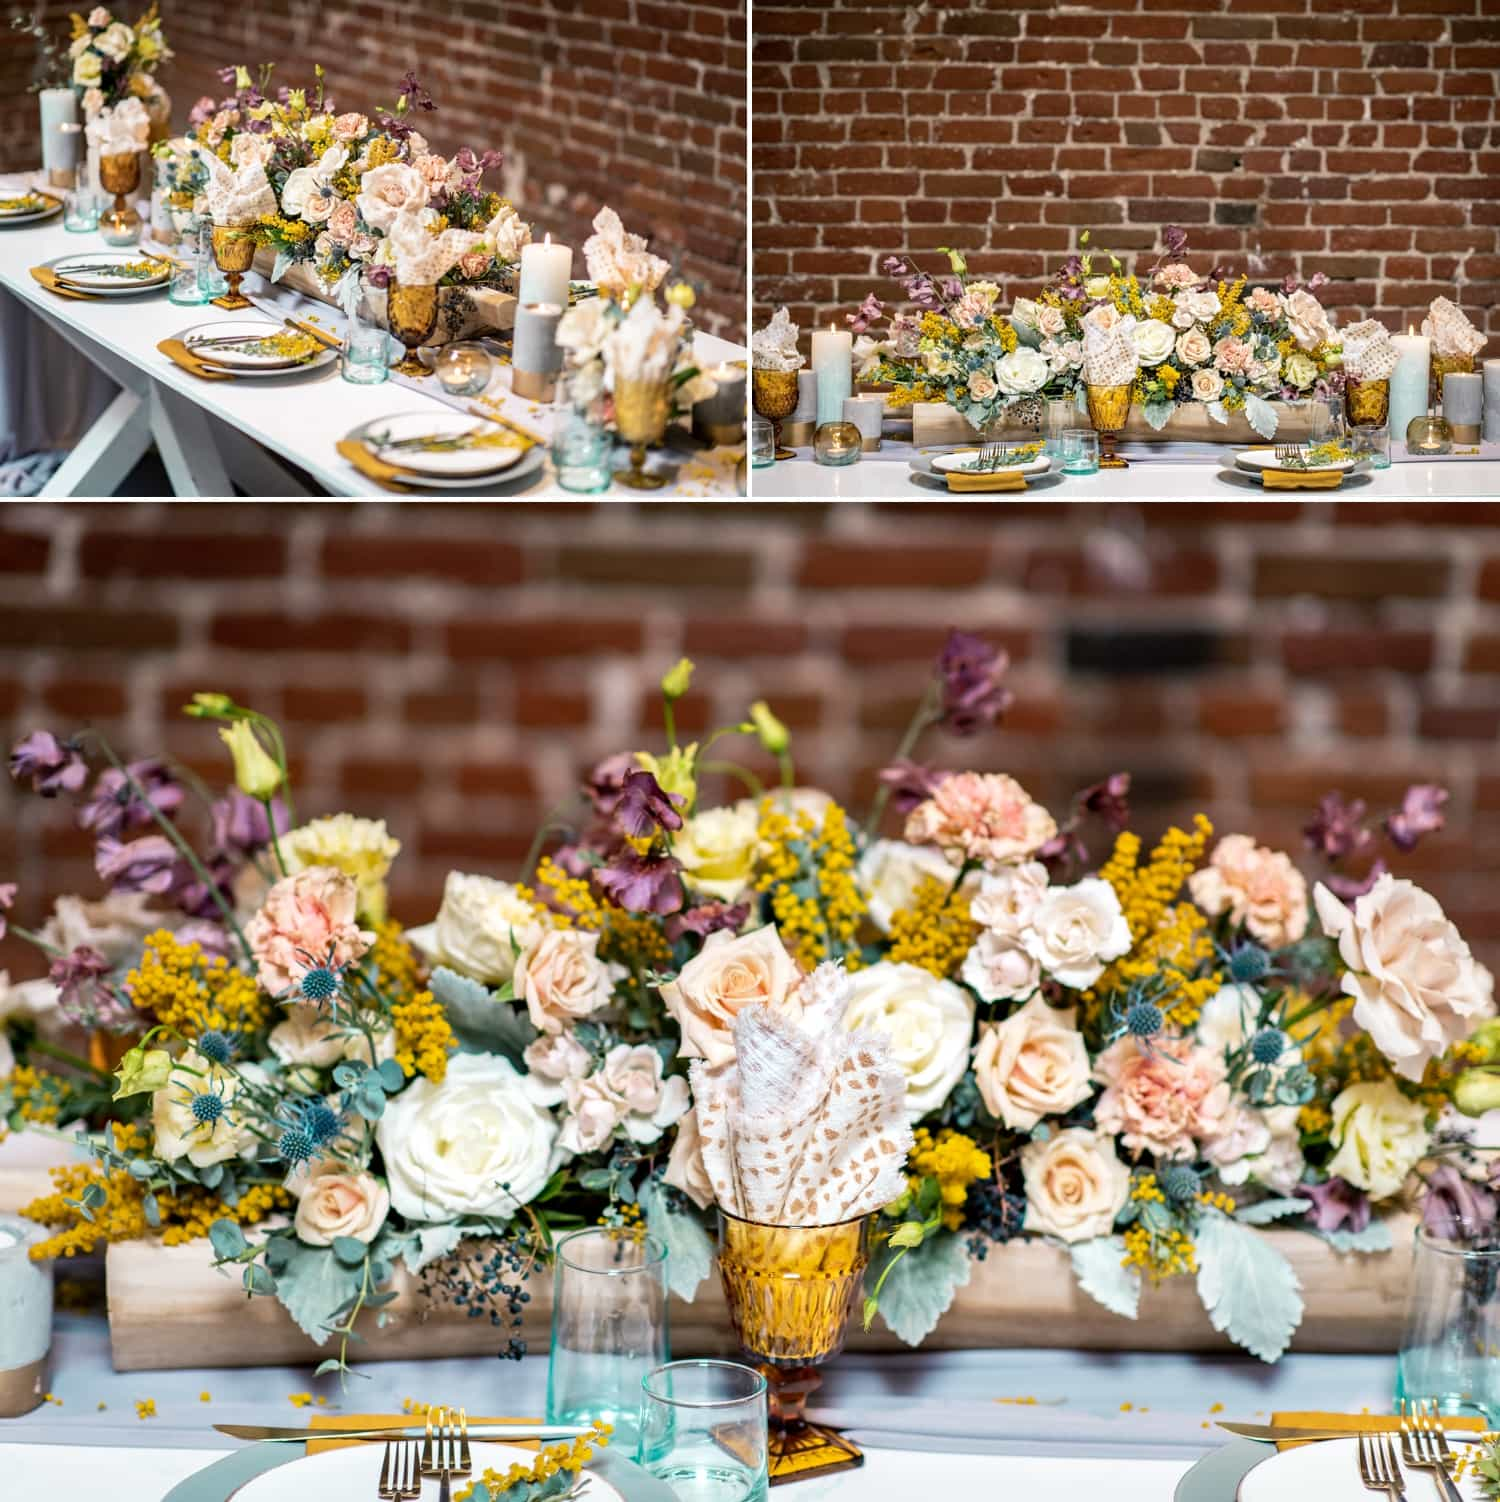 Table set up for a wedding at the Pannikin Building in San Diego